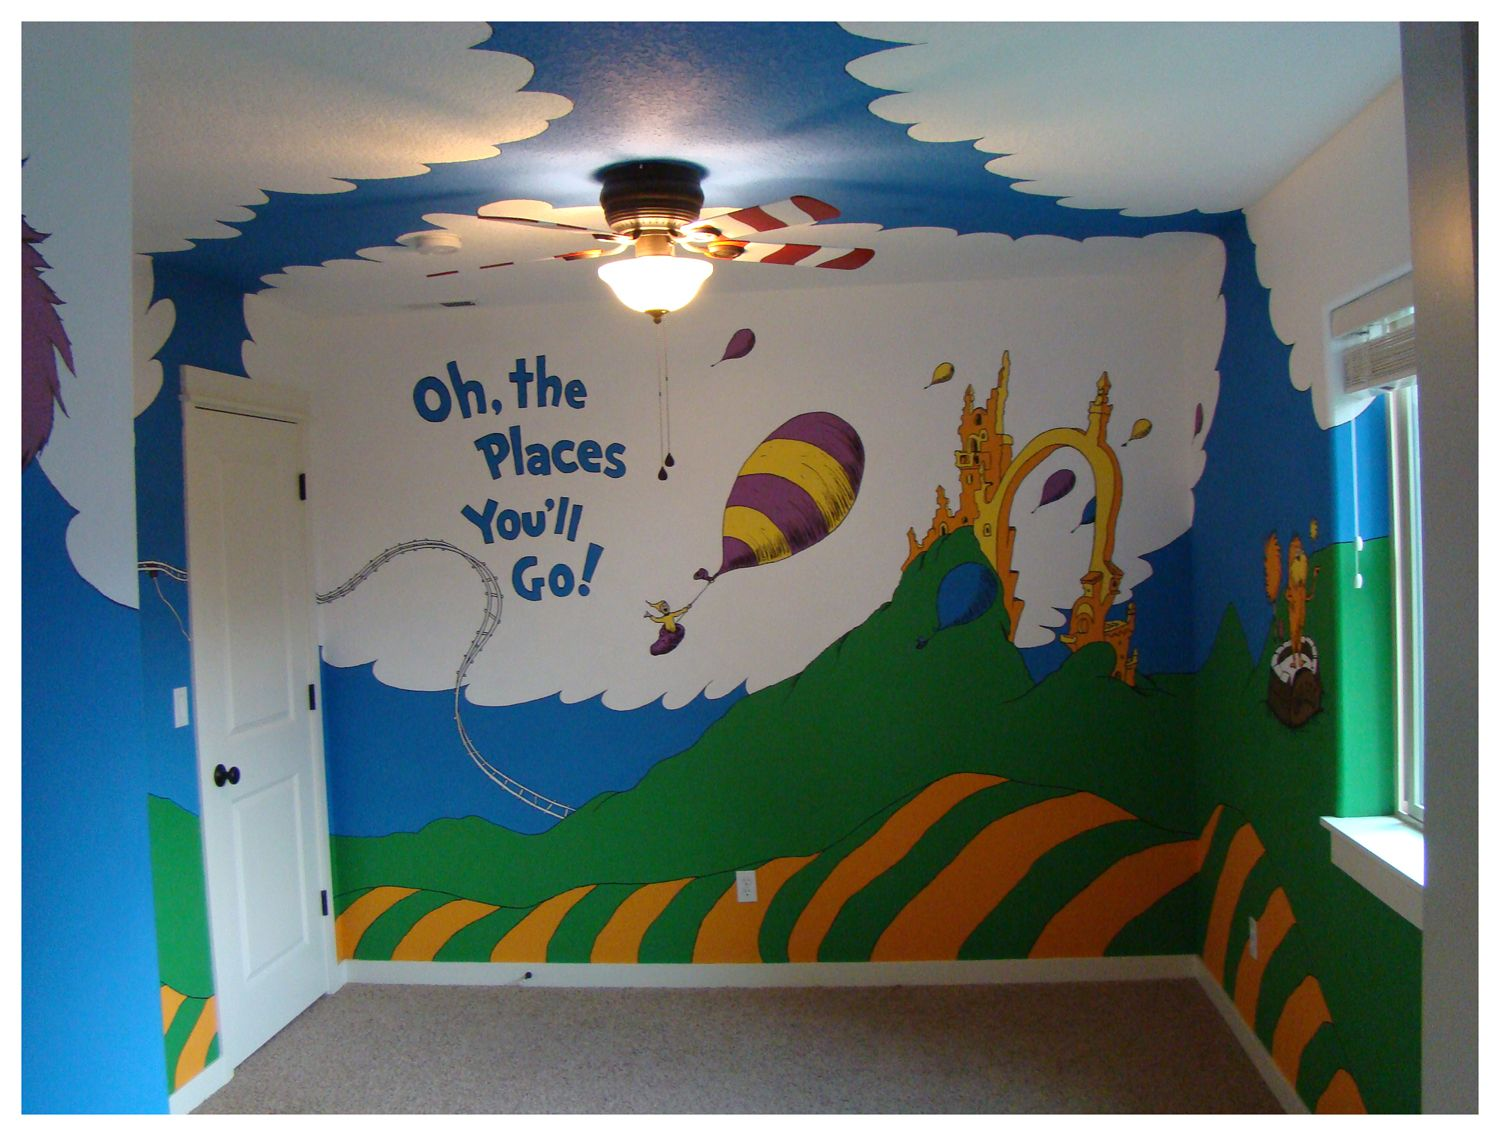 Charming Dr Seuss Mural   Oh The Places You Will Go Playroom Part 6